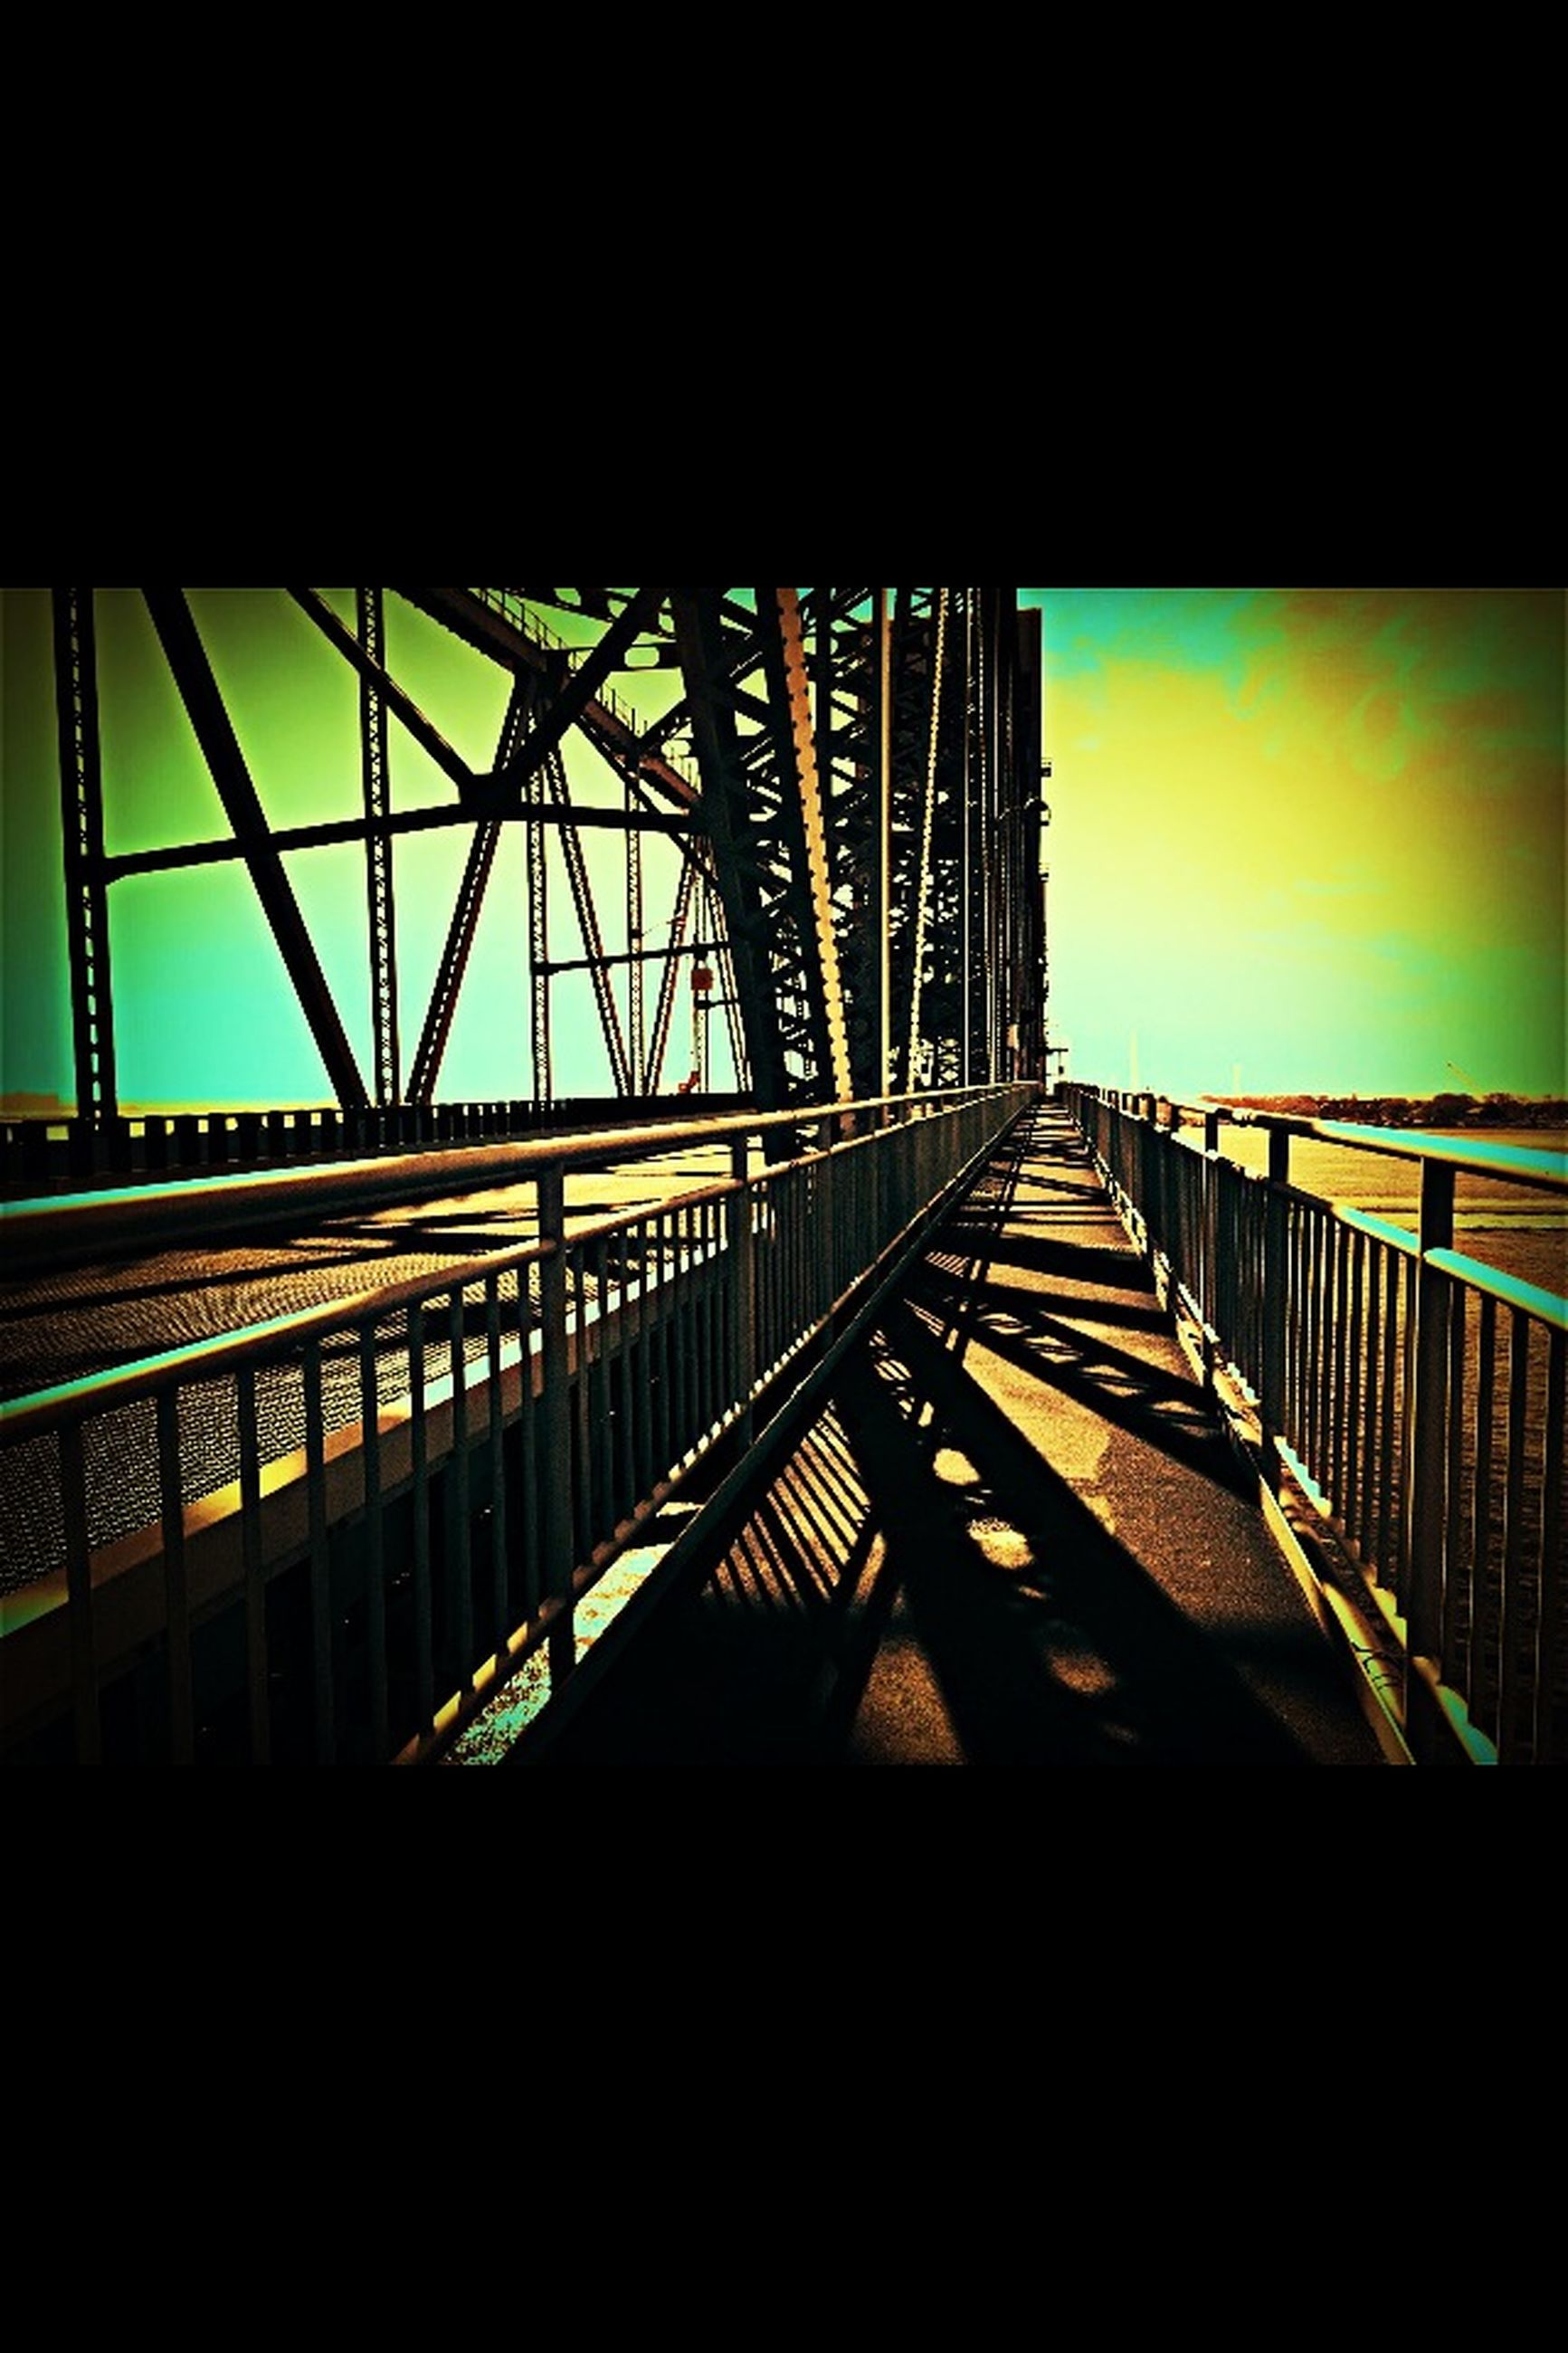 architecture, built structure, connection, bridge - man made structure, low angle view, sky, bridge, railing, engineering, transportation, building exterior, diminishing perspective, indoors, clear sky, no people, city, the way forward, long, metal